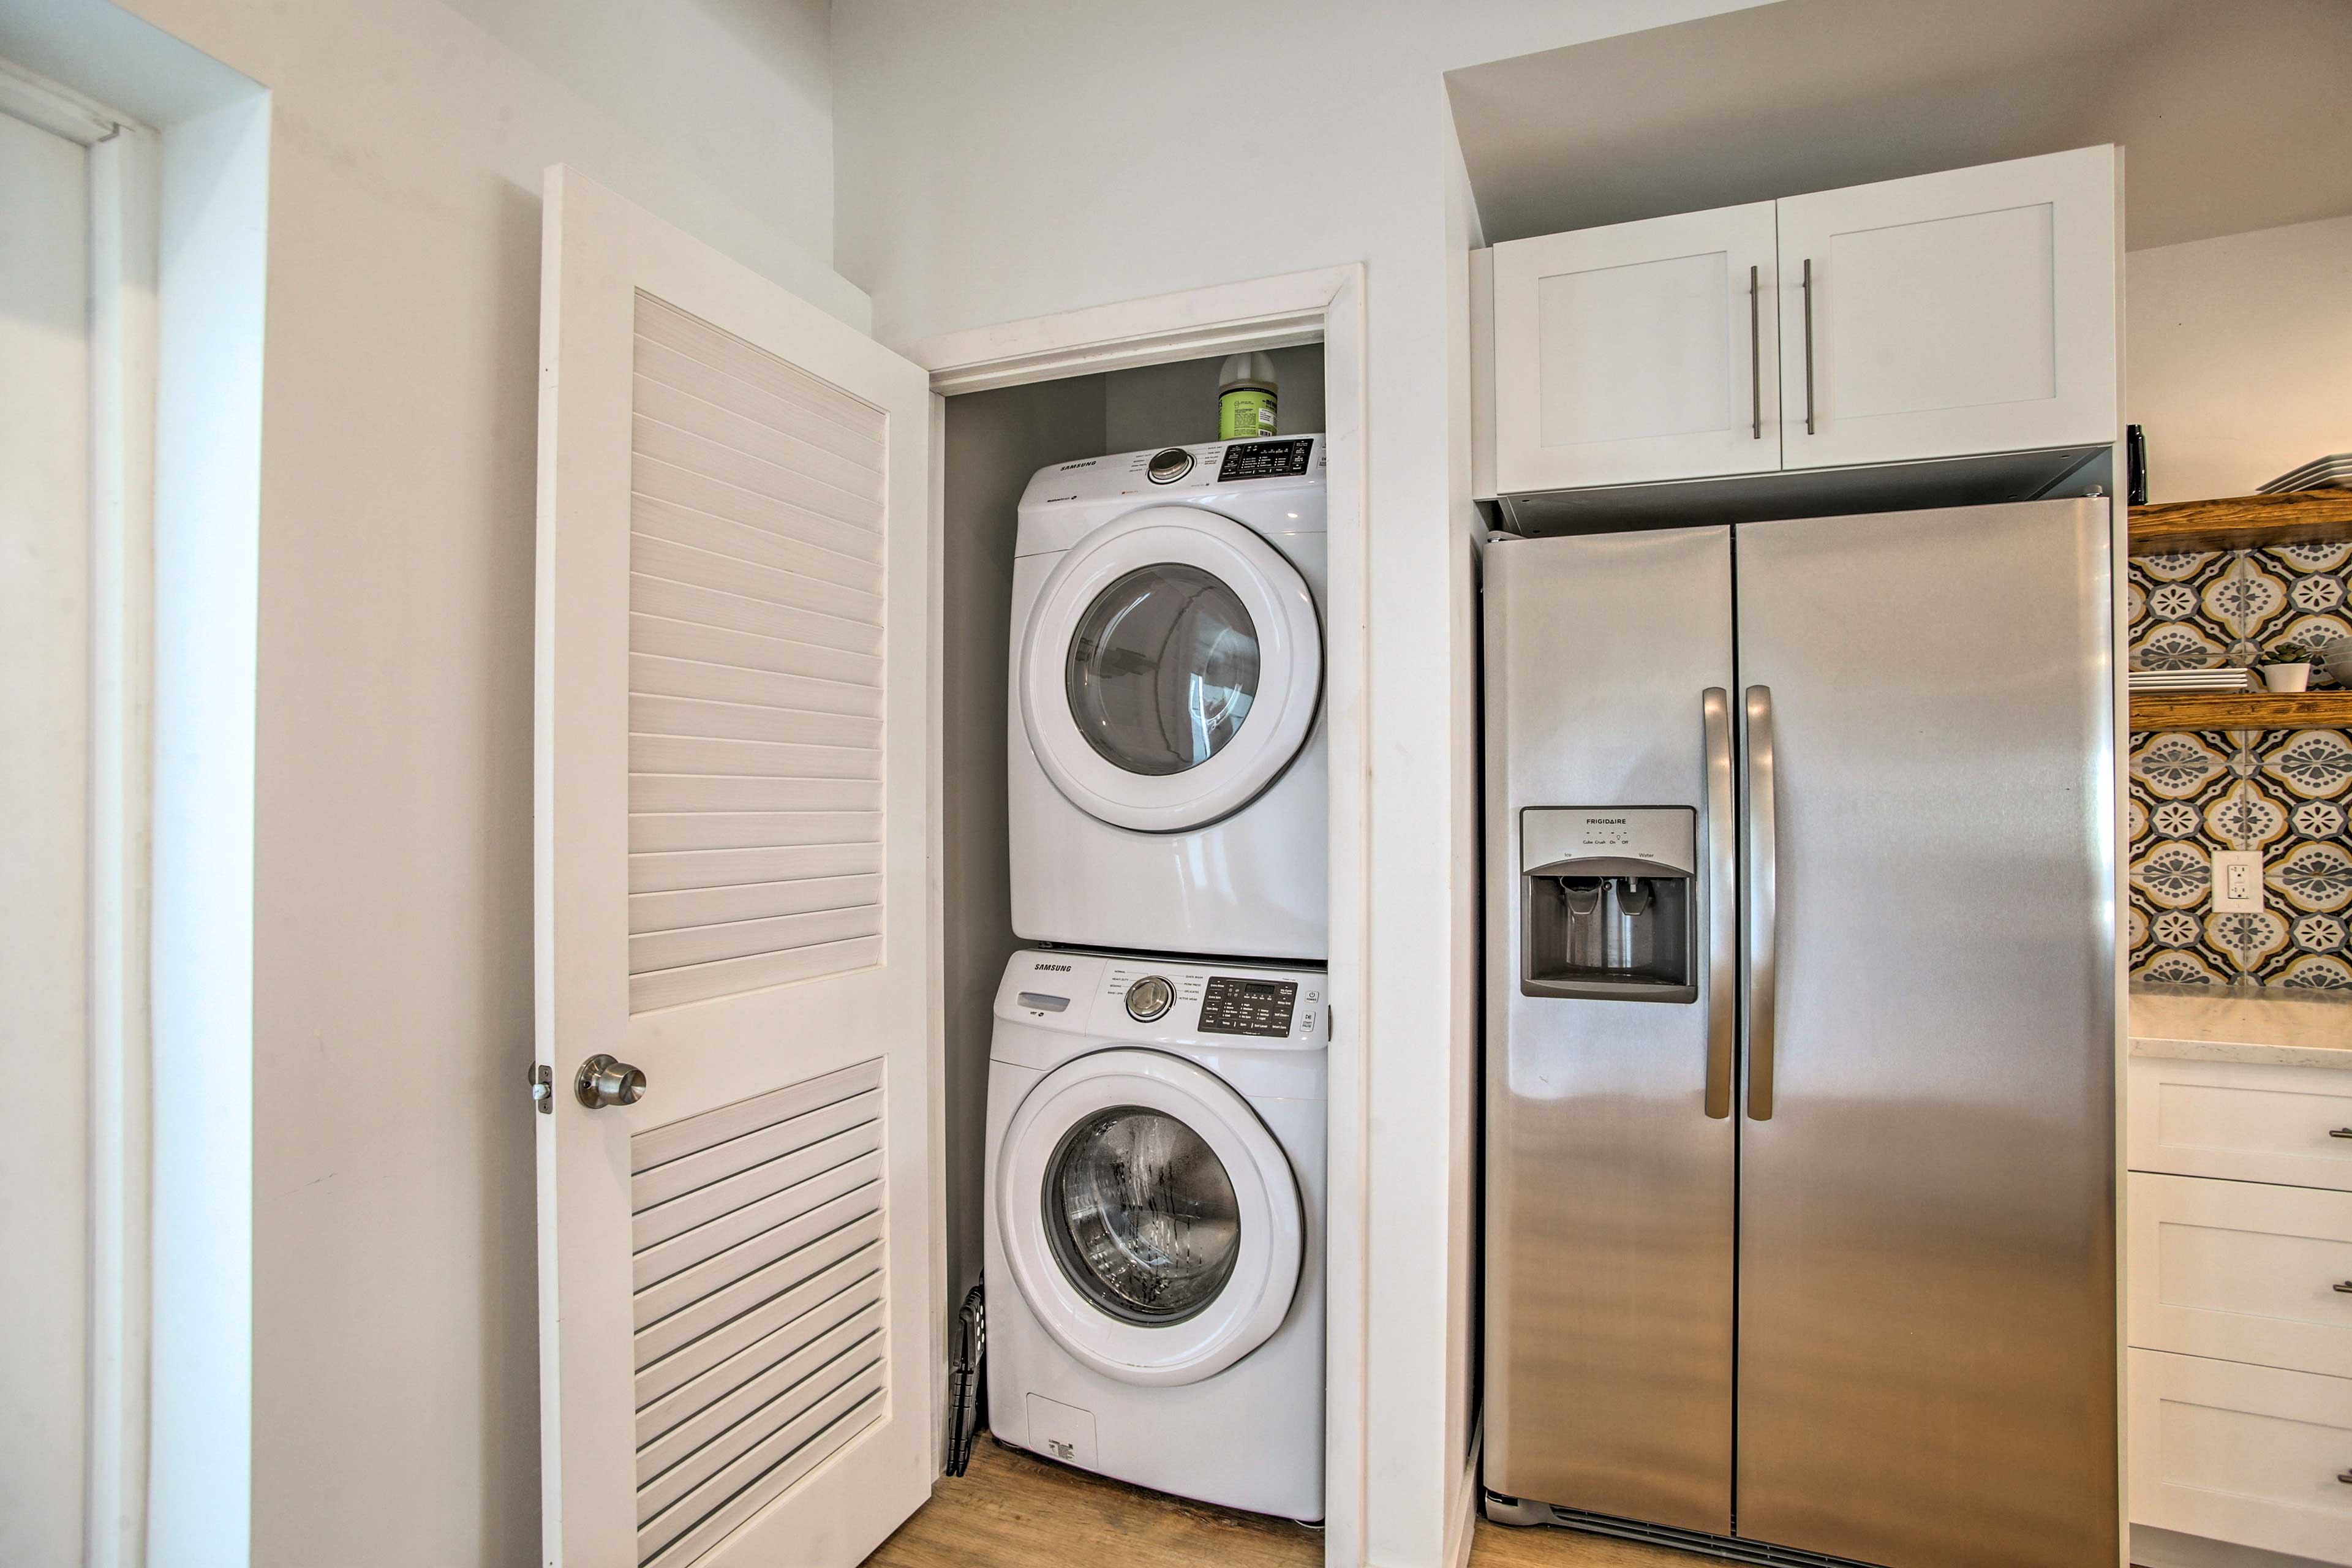 Keep your beach towels fresh with these in-unit laundry machines.